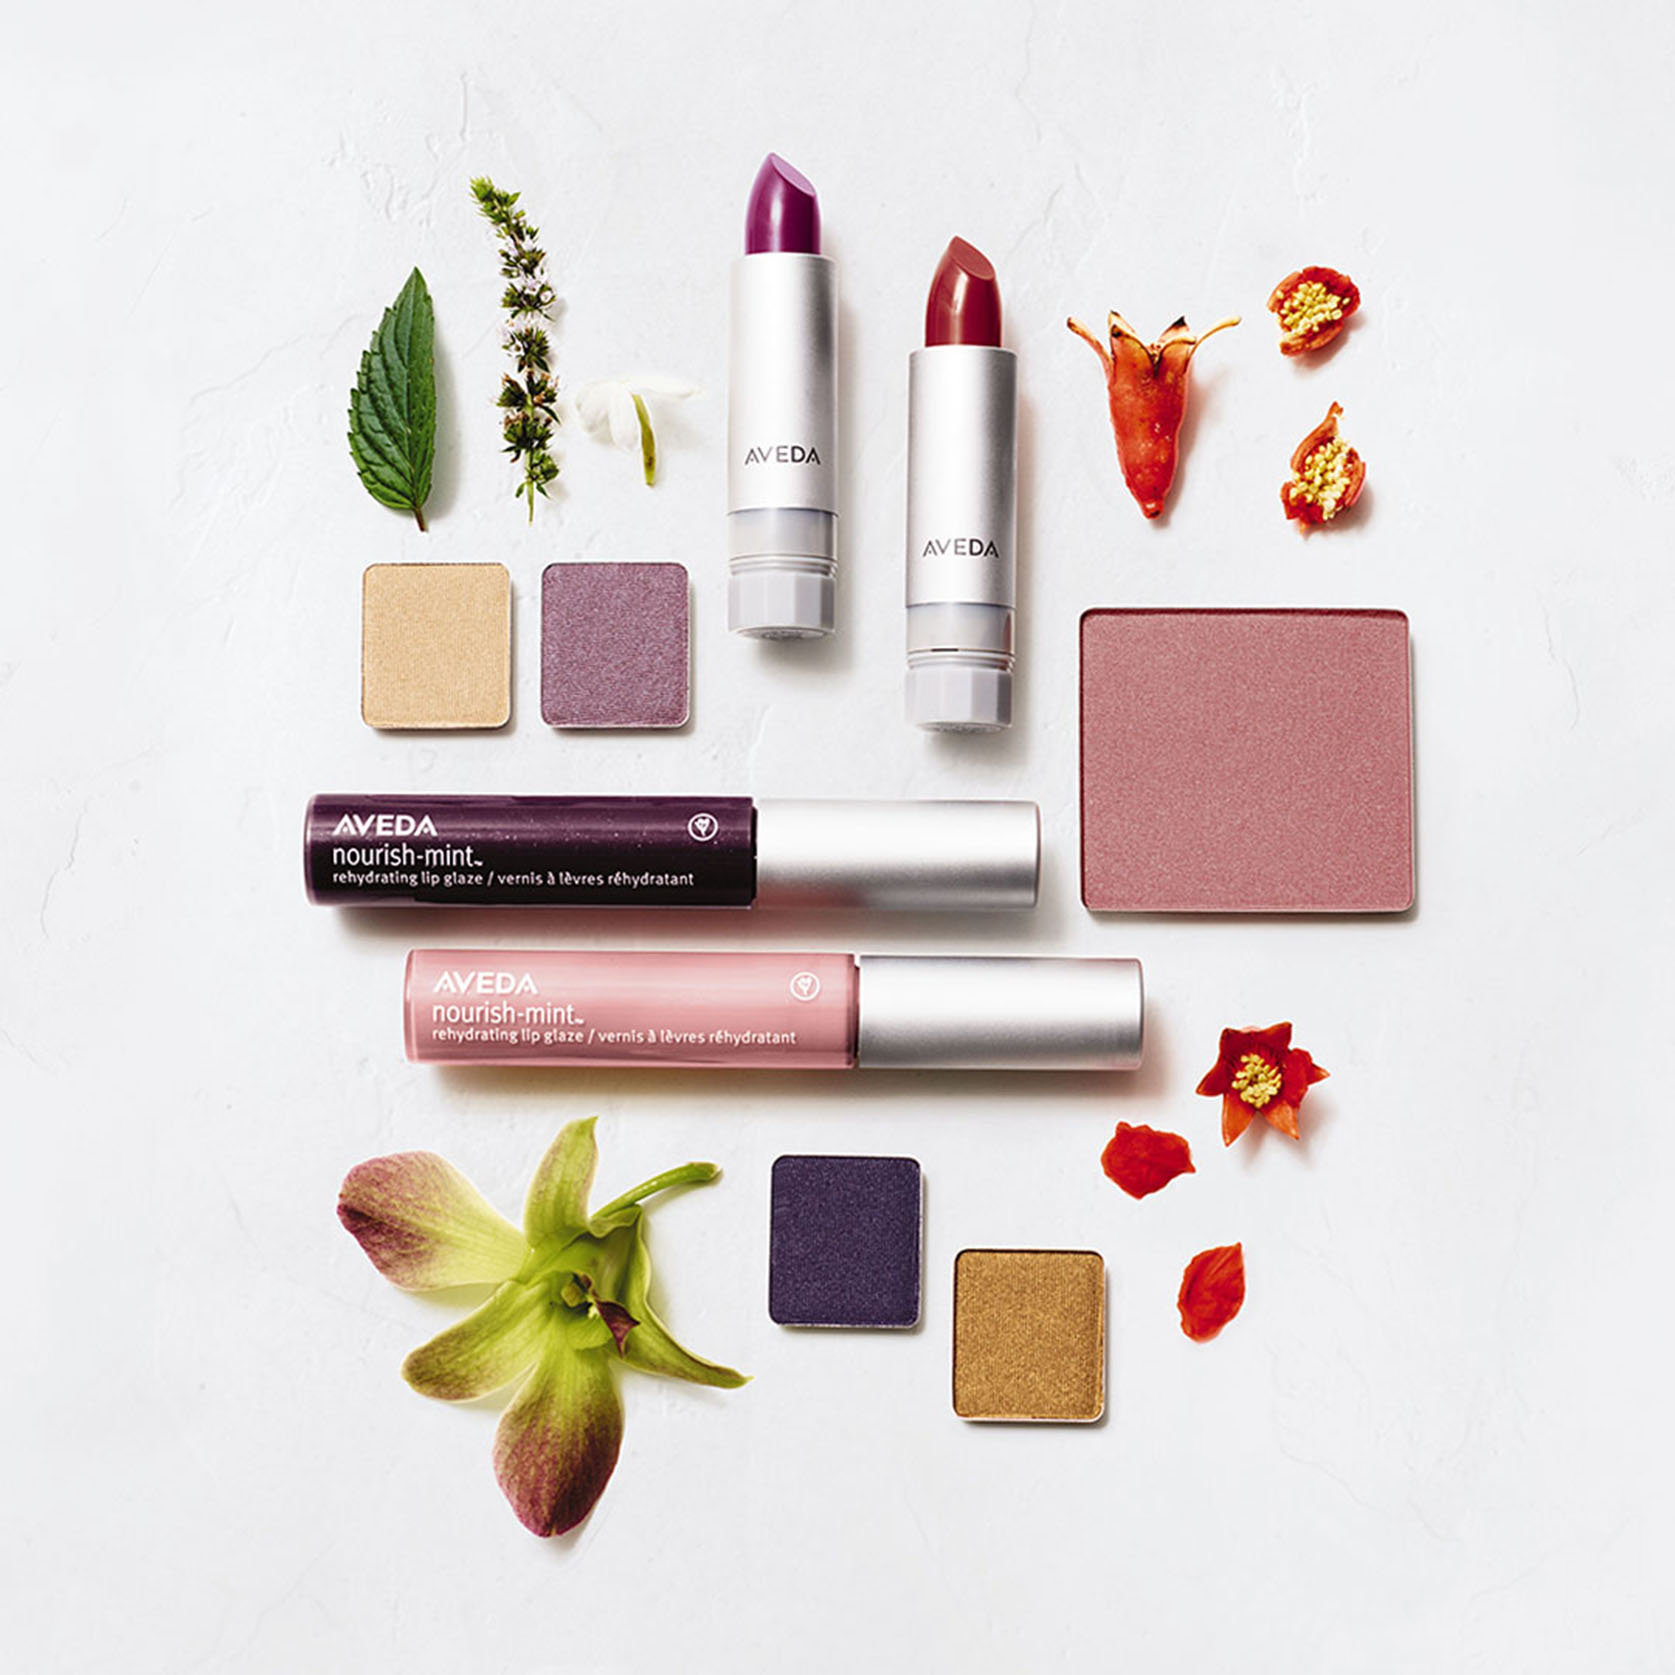 - MAKEUPMake up application $50 With strip Lashes $75 Lessons $75**step by step educational session on how-to use right skin and make up products to best enhance your natural beauty.*We offer on location services